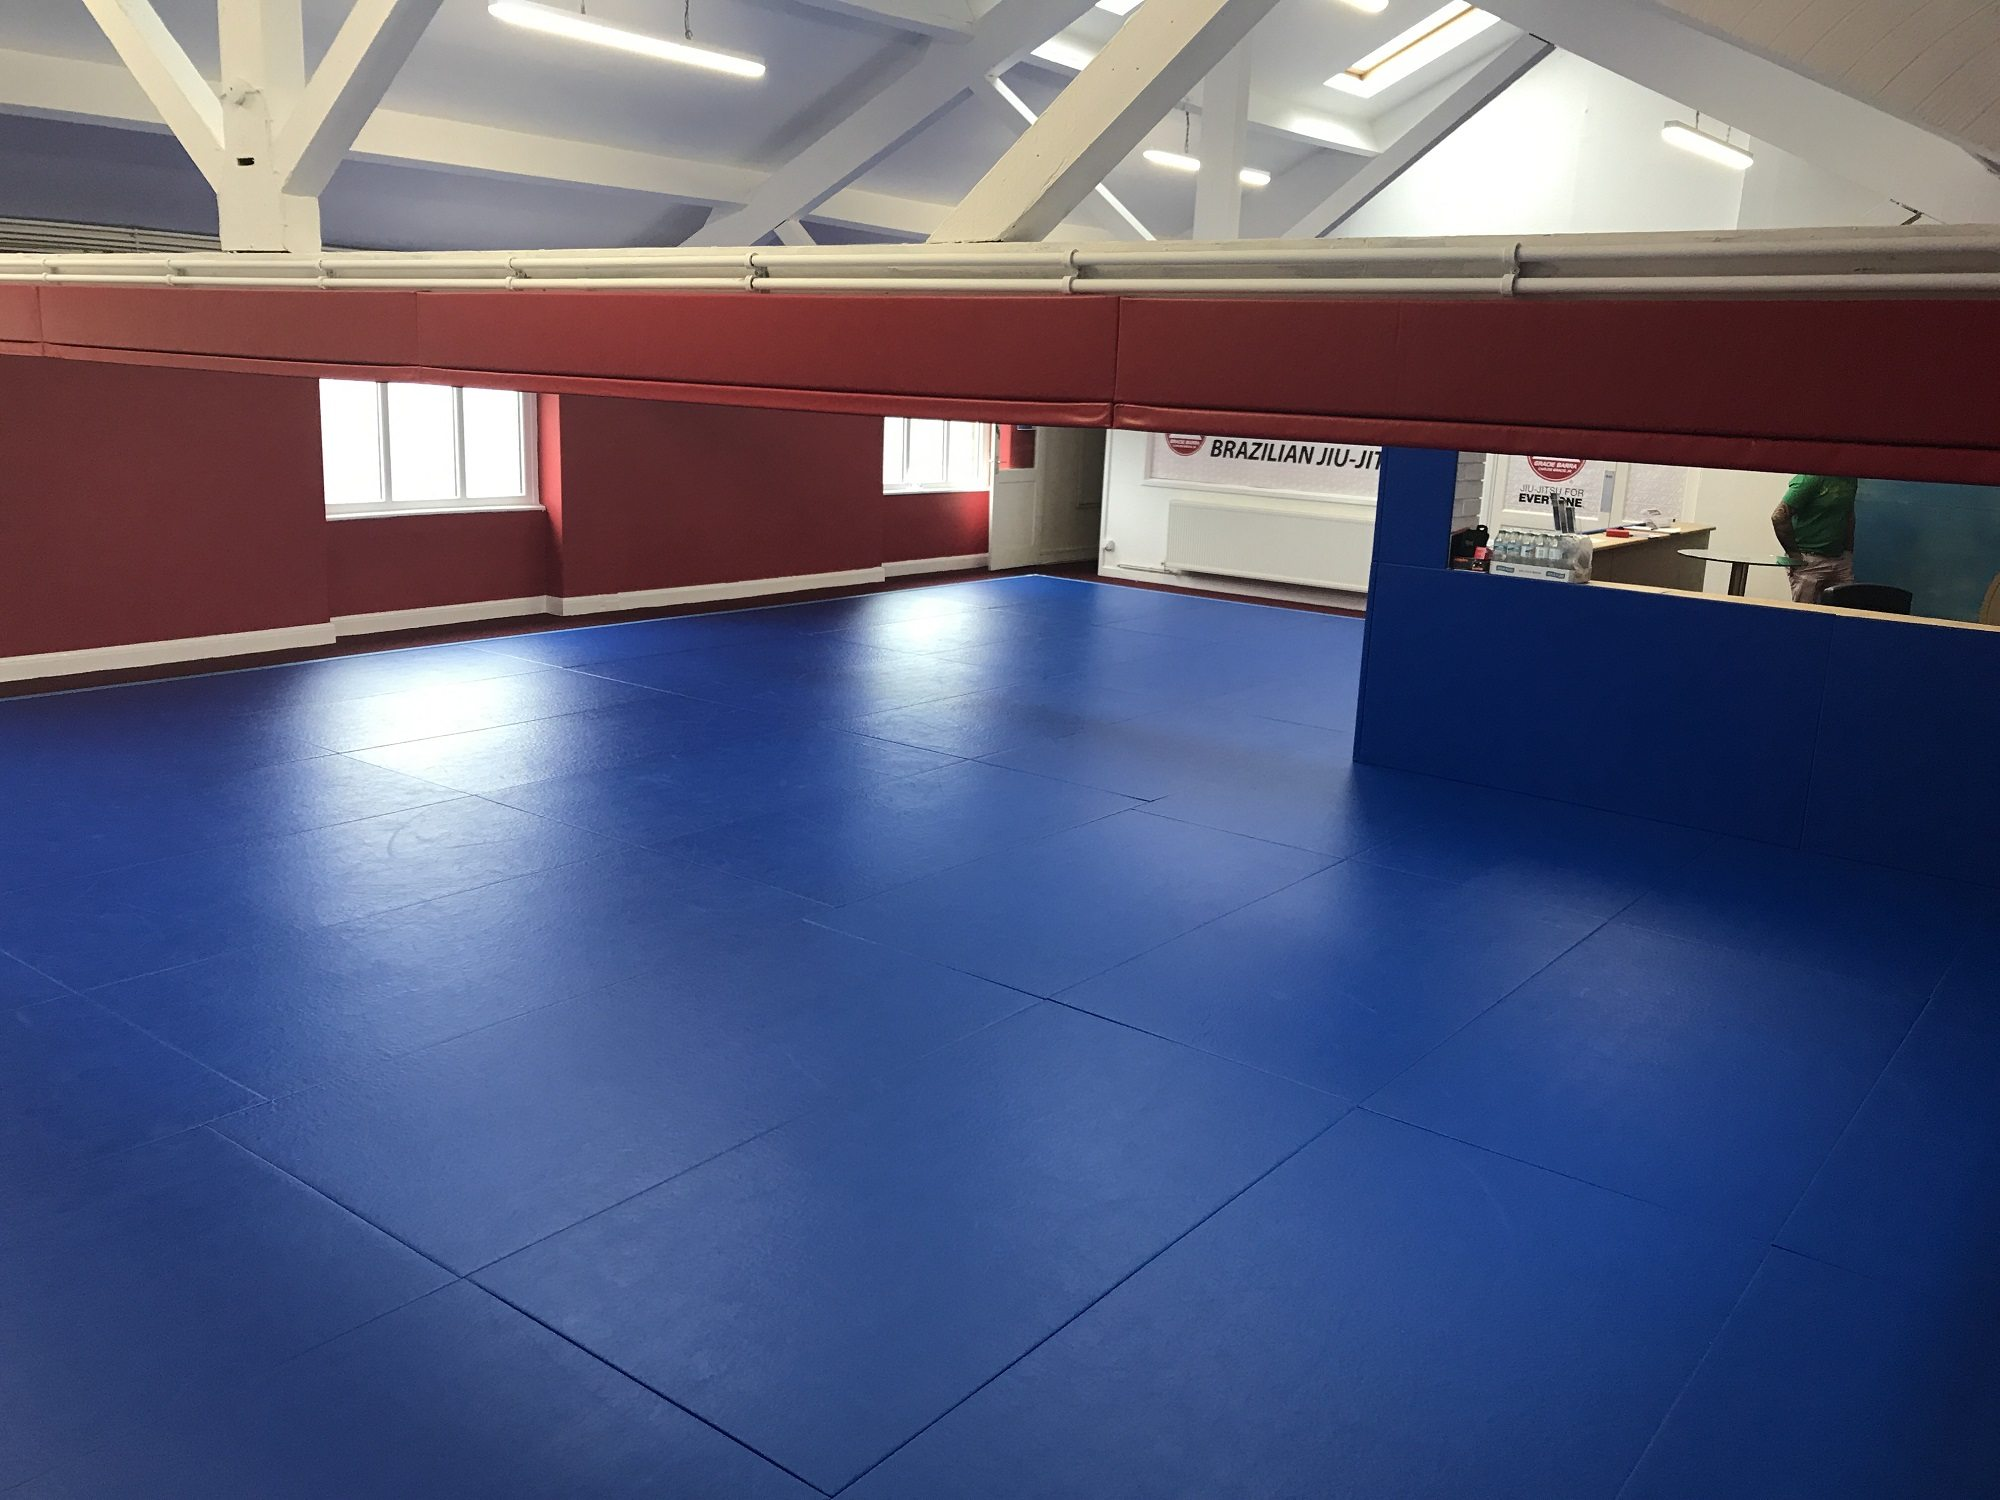 BJJ Mats for Gracie Barra